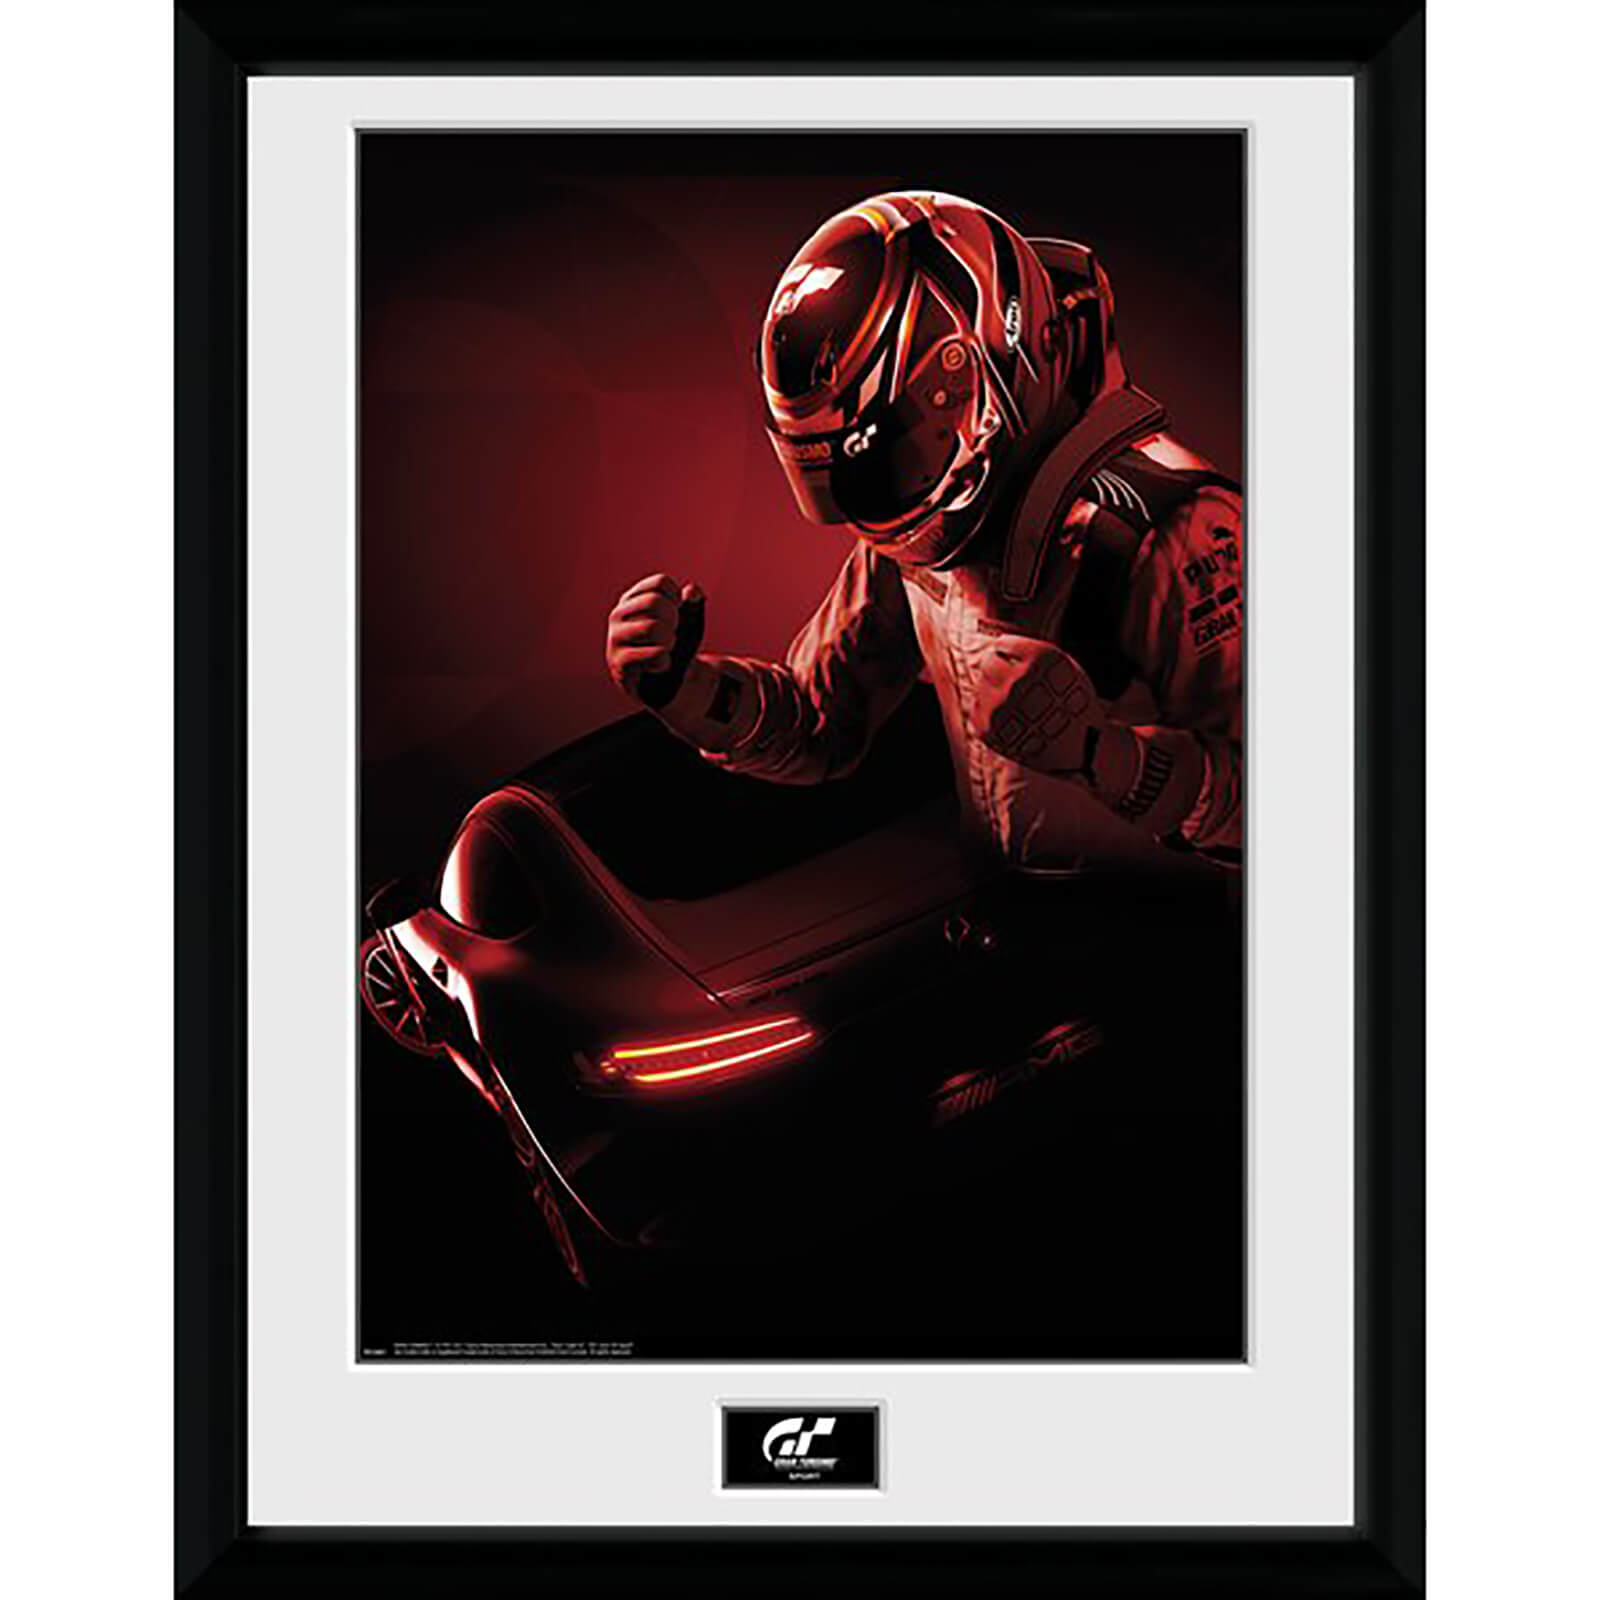 Gran Turismo Key Art Framed Photograph 12 x 16 Inch